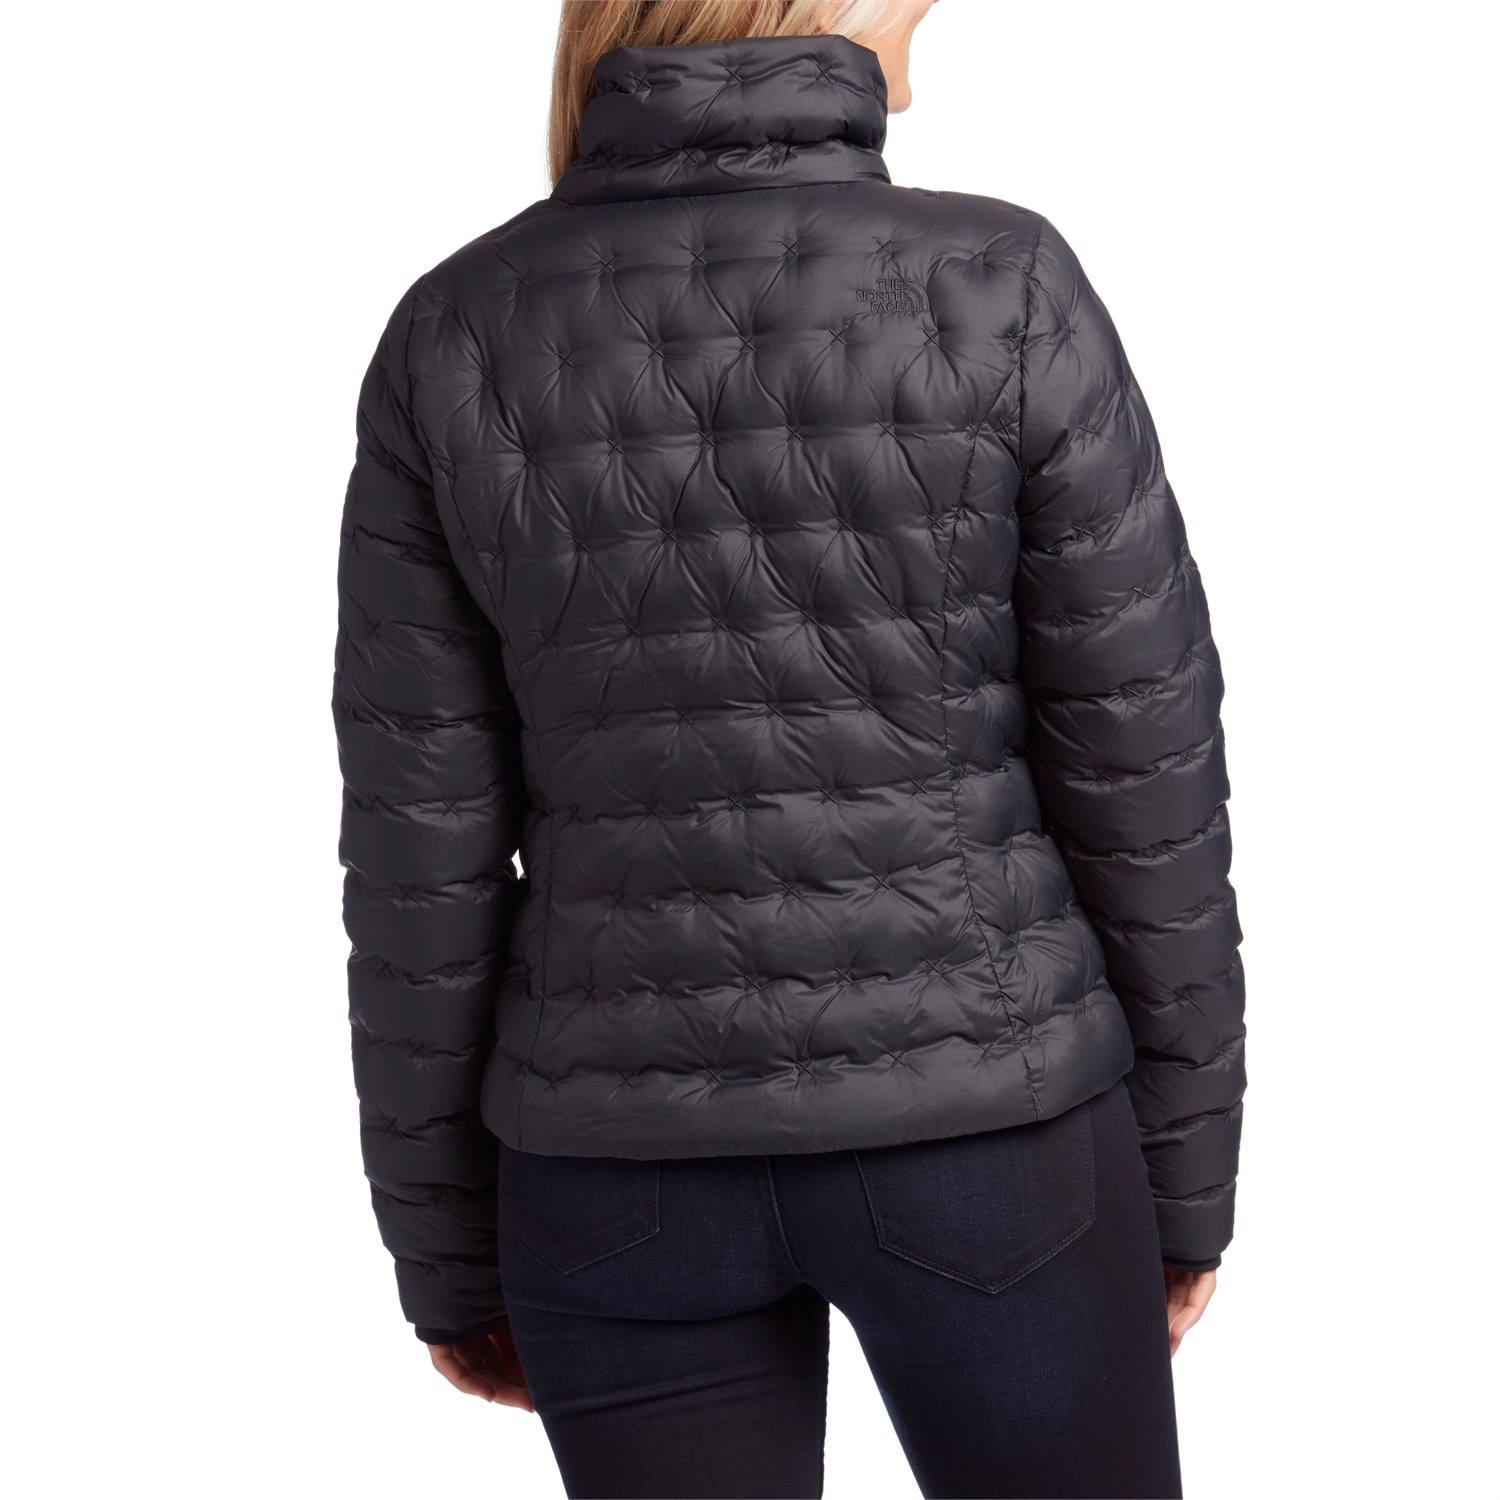 c8c10a0d21486 The North Face Holladown Crop Jacket - Women s